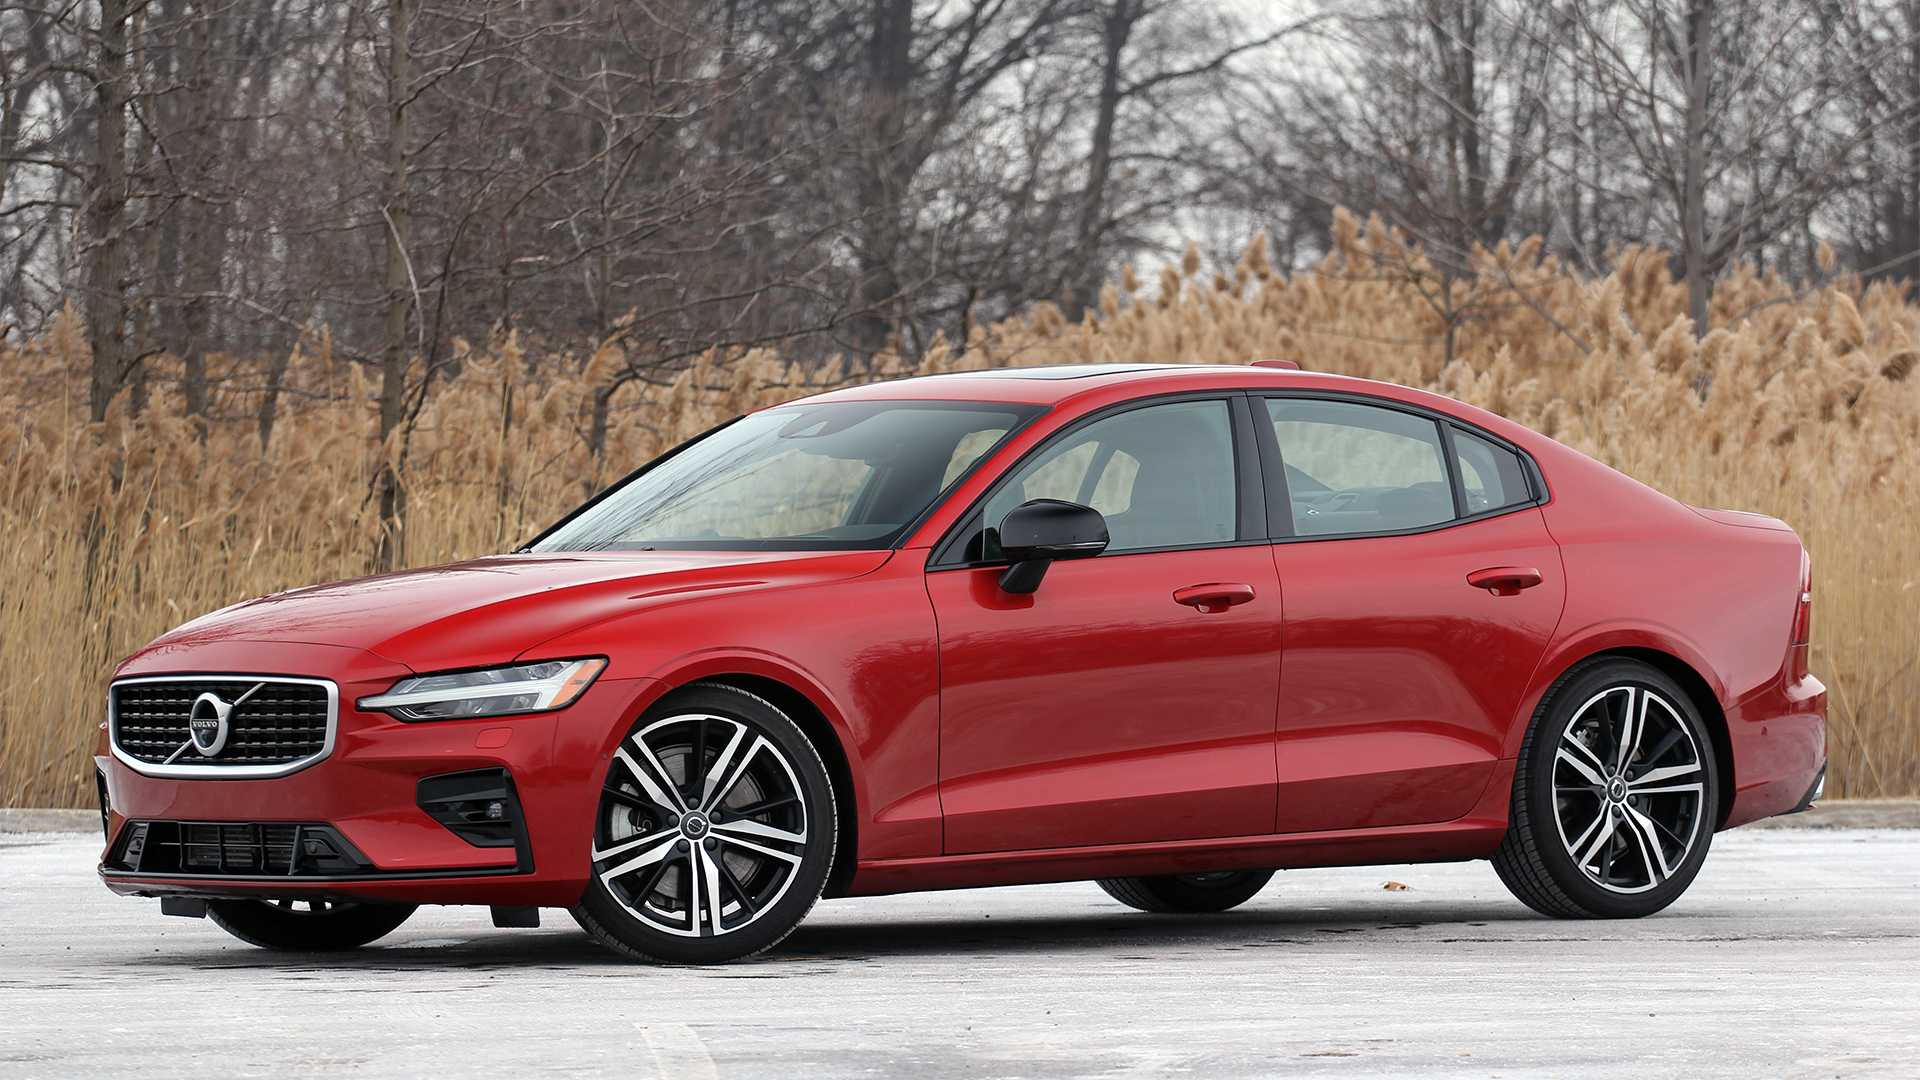 77 The 2019 Volvo S60 Gas Mileage Spy Shoot Engine with 2019 Volvo S60 Gas Mileage Spy Shoot